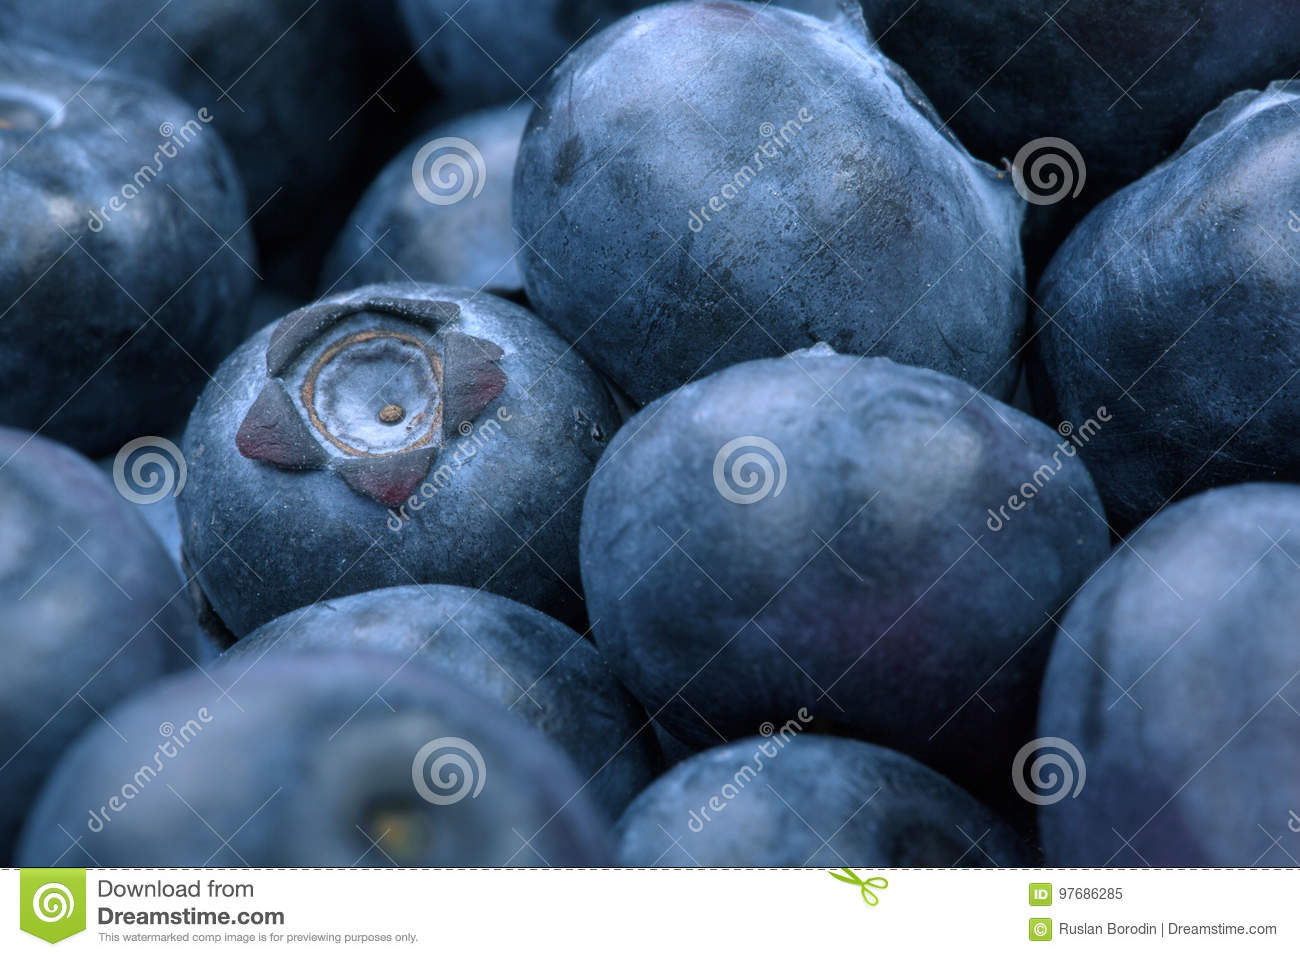 Macro photo of organic and sweet blueberries as a background. Healthful and fresh berries for desserts or smoothies.